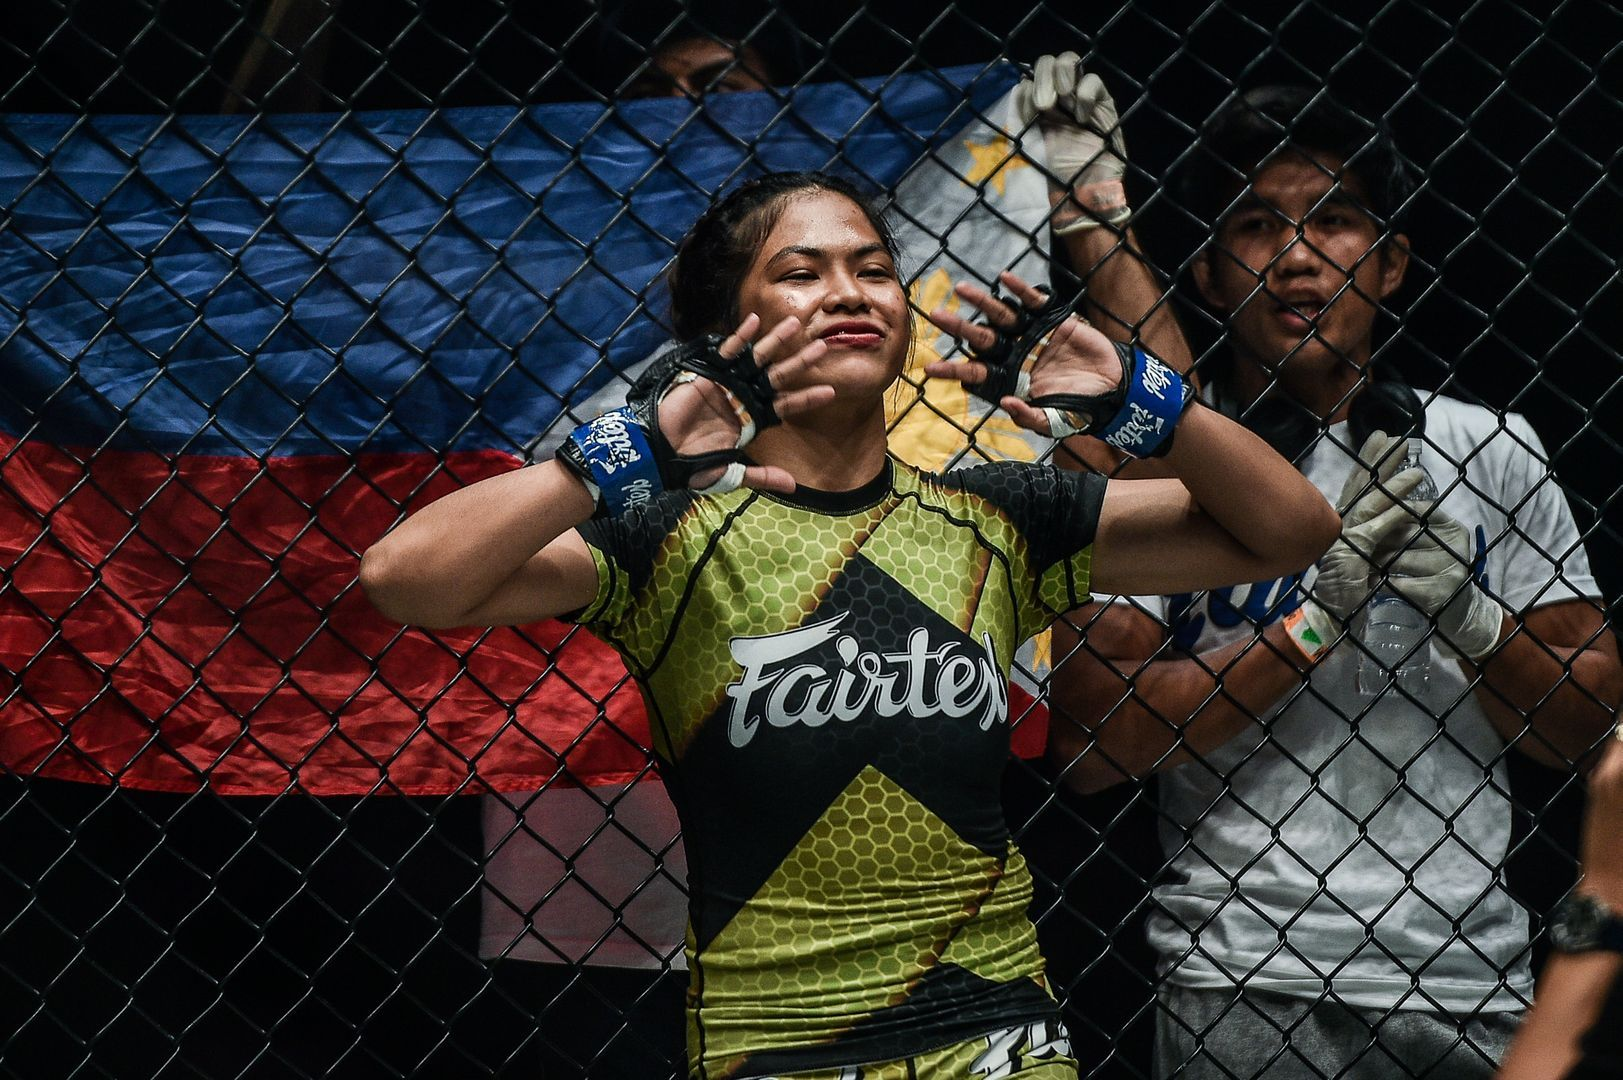 Philippine mixed martial artist stands against the fence